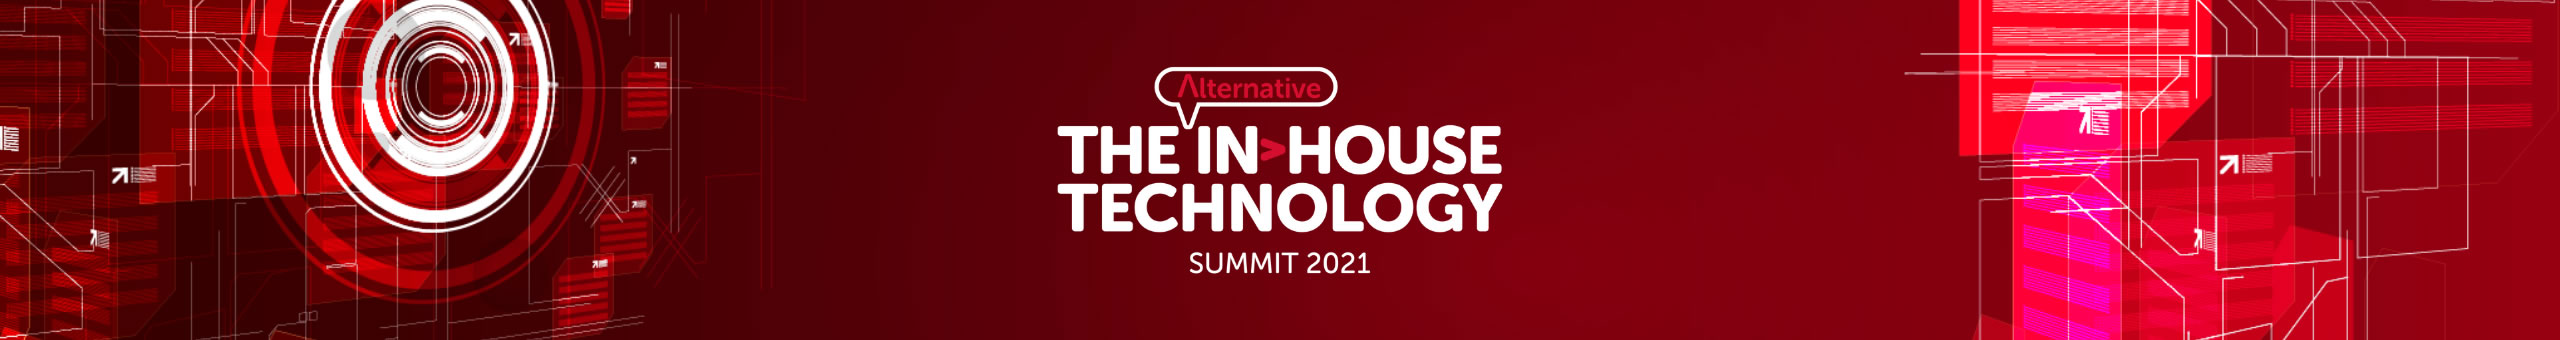 THE ALTERNATIVE IN-HOUSE TECHNOLOGY SUMMIT